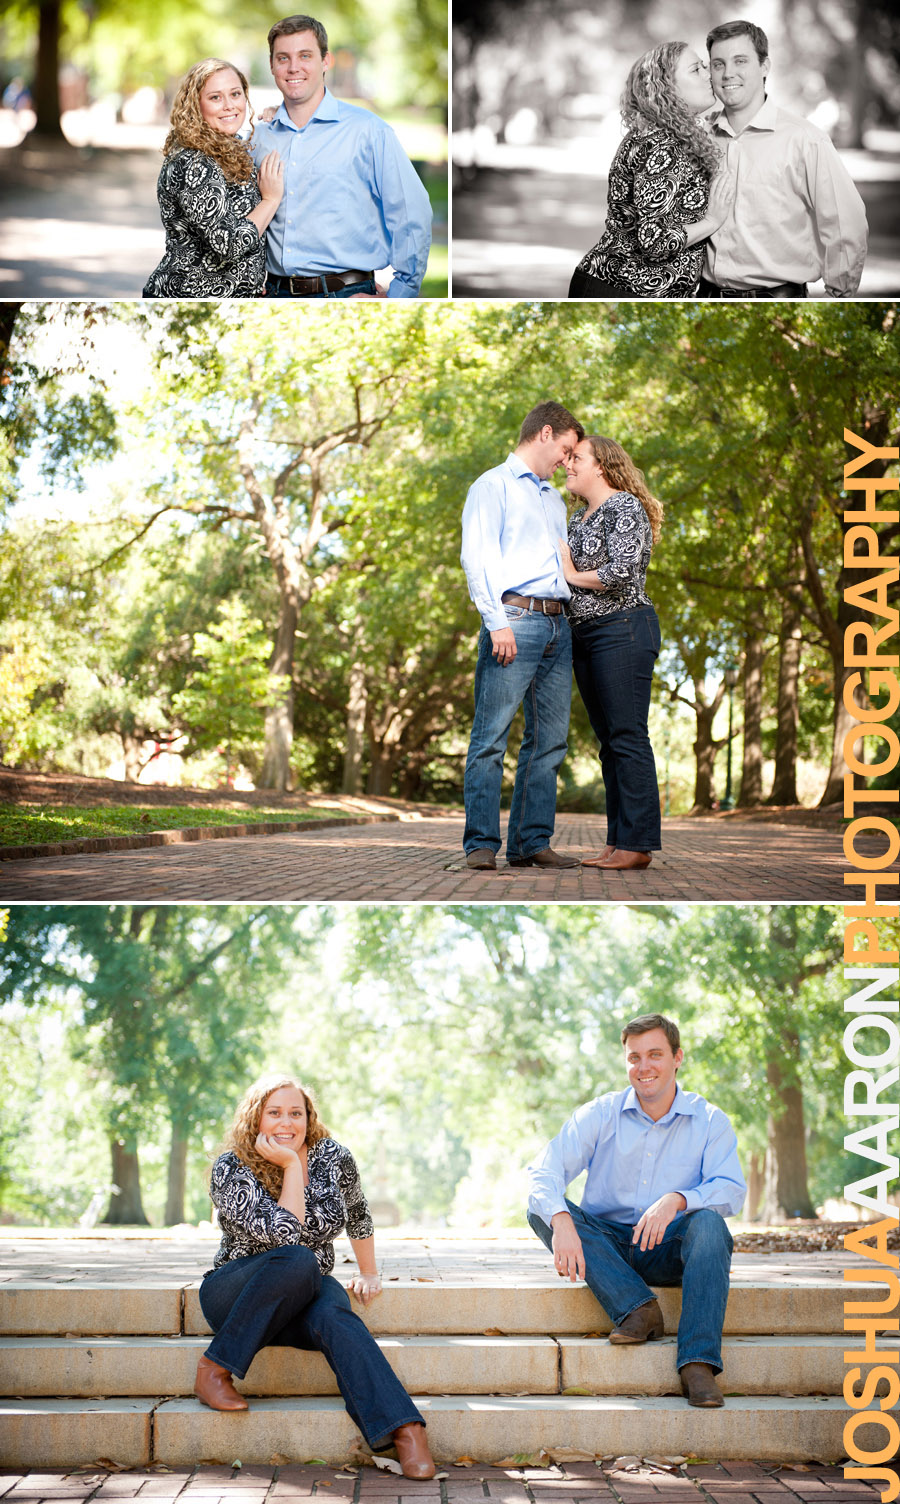 Engagement session at USC